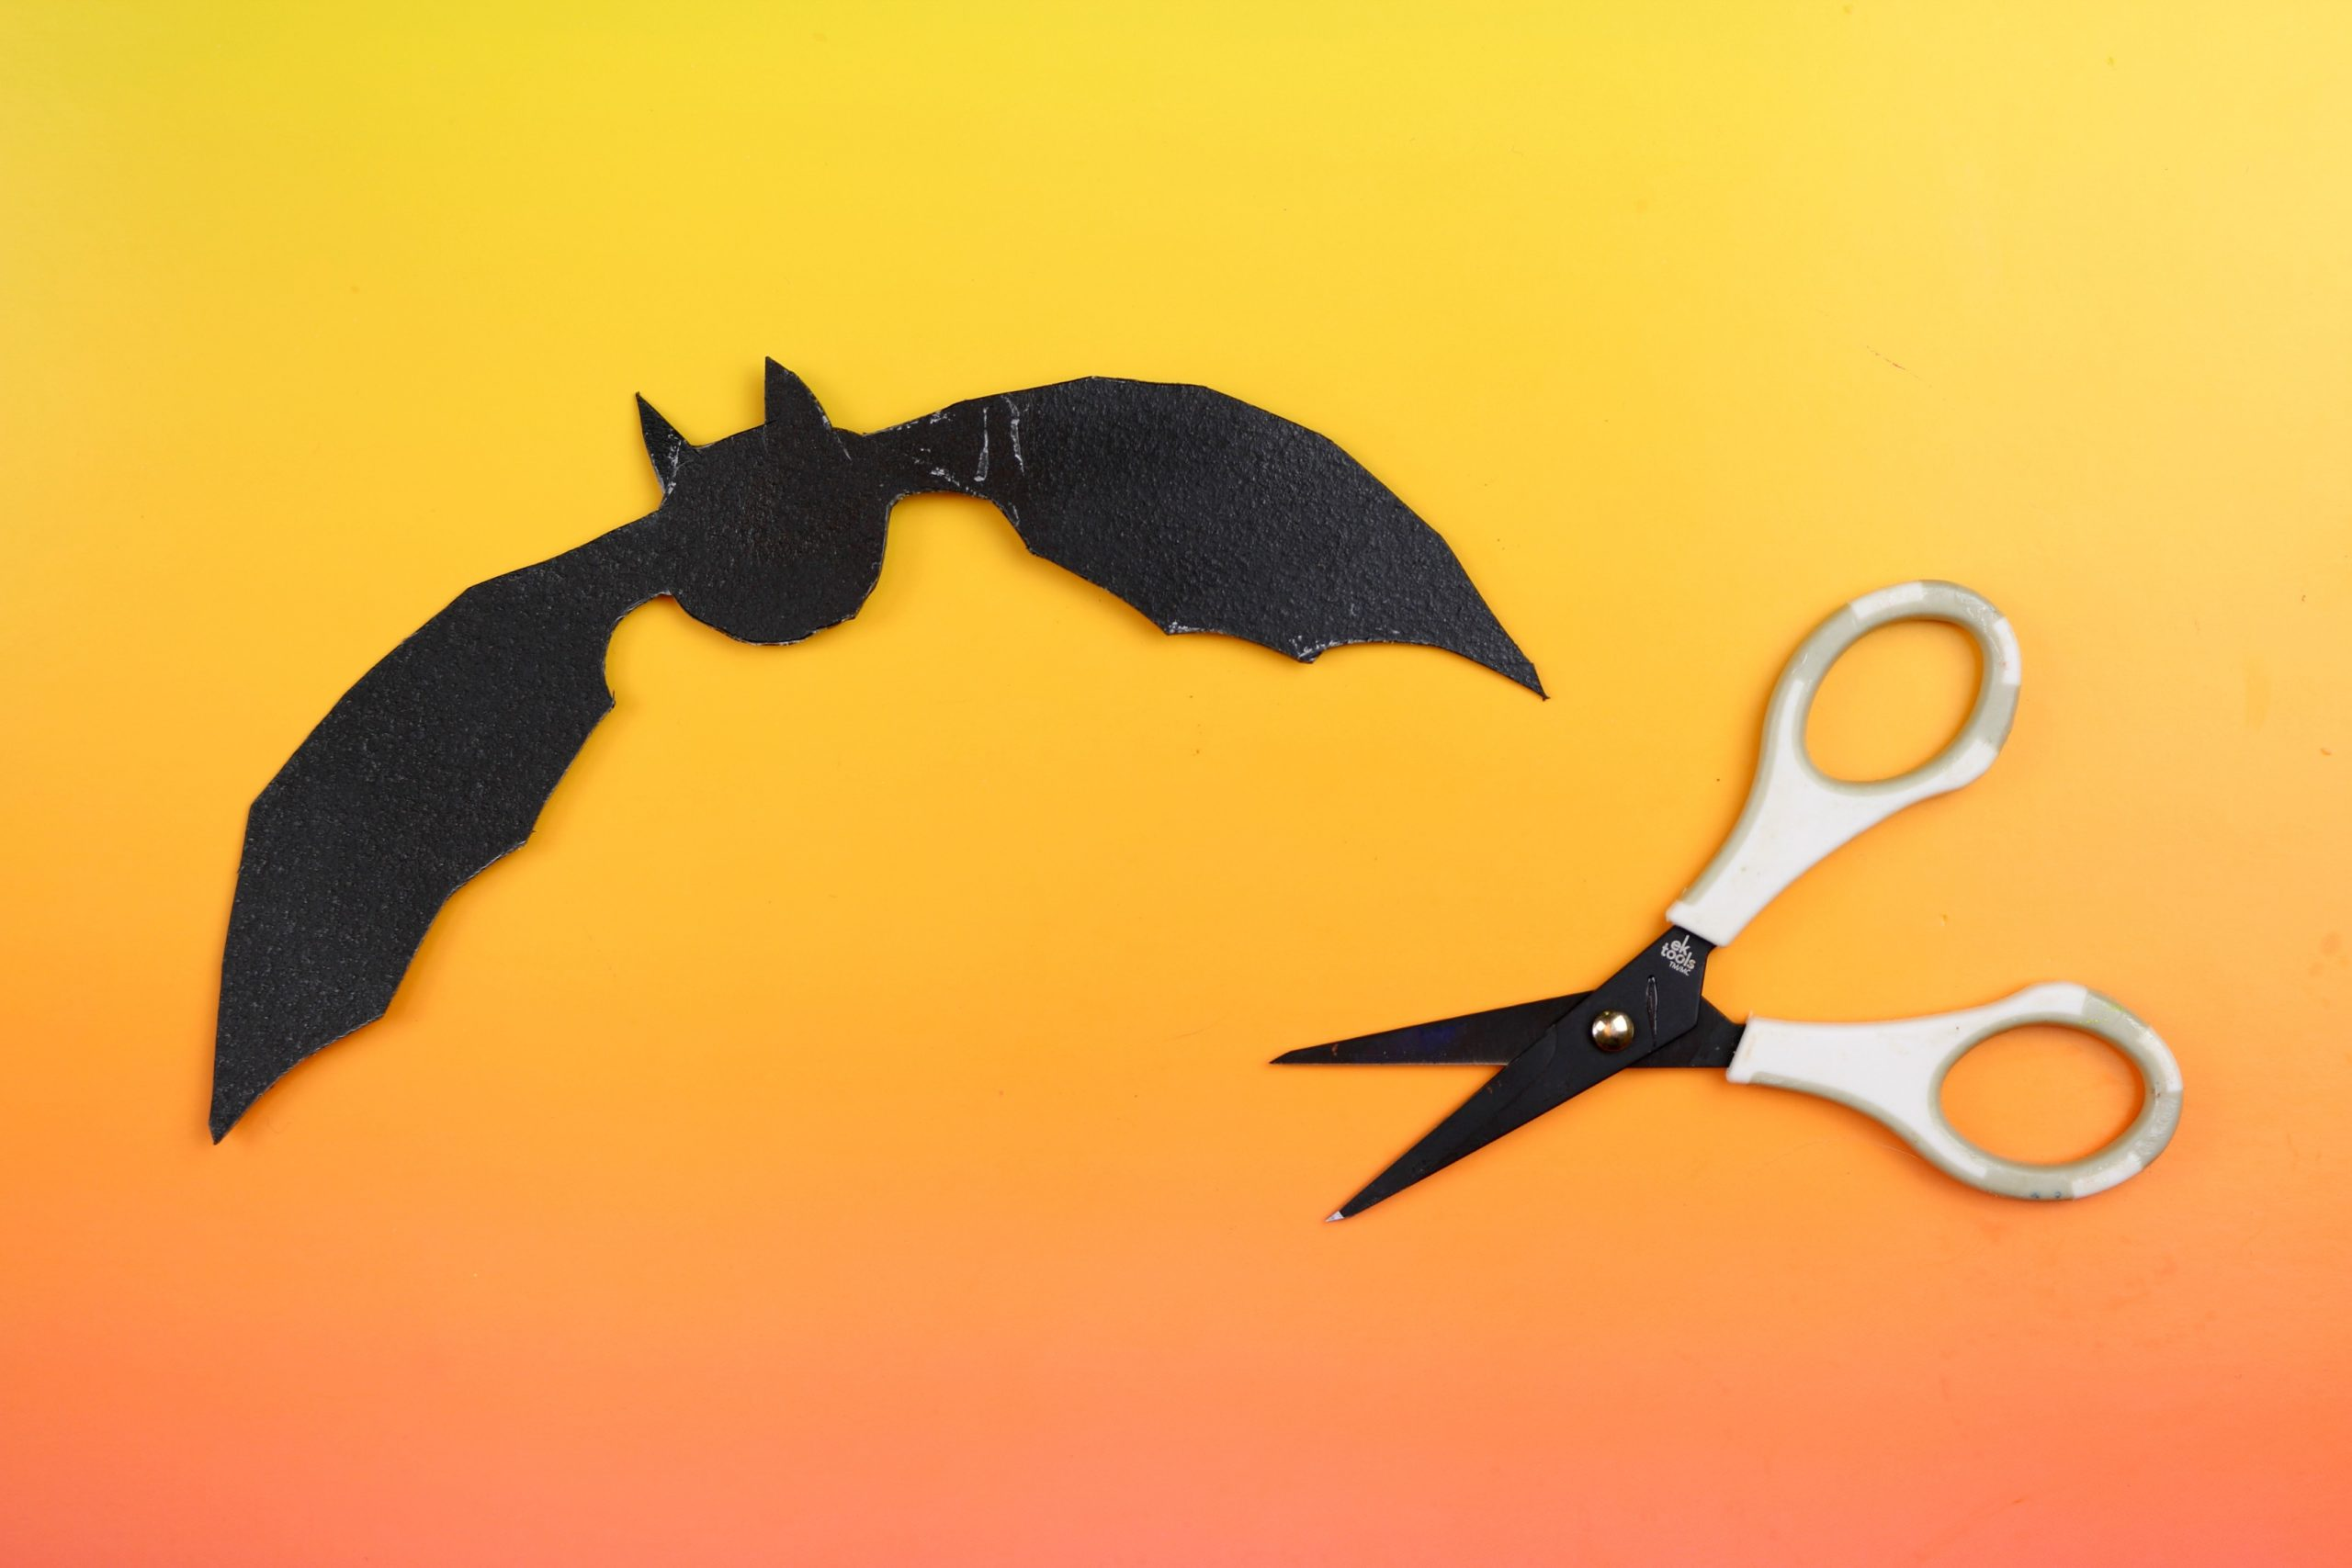 WORBLA HALLOWEEN BATS WITH CRICUT MAKER